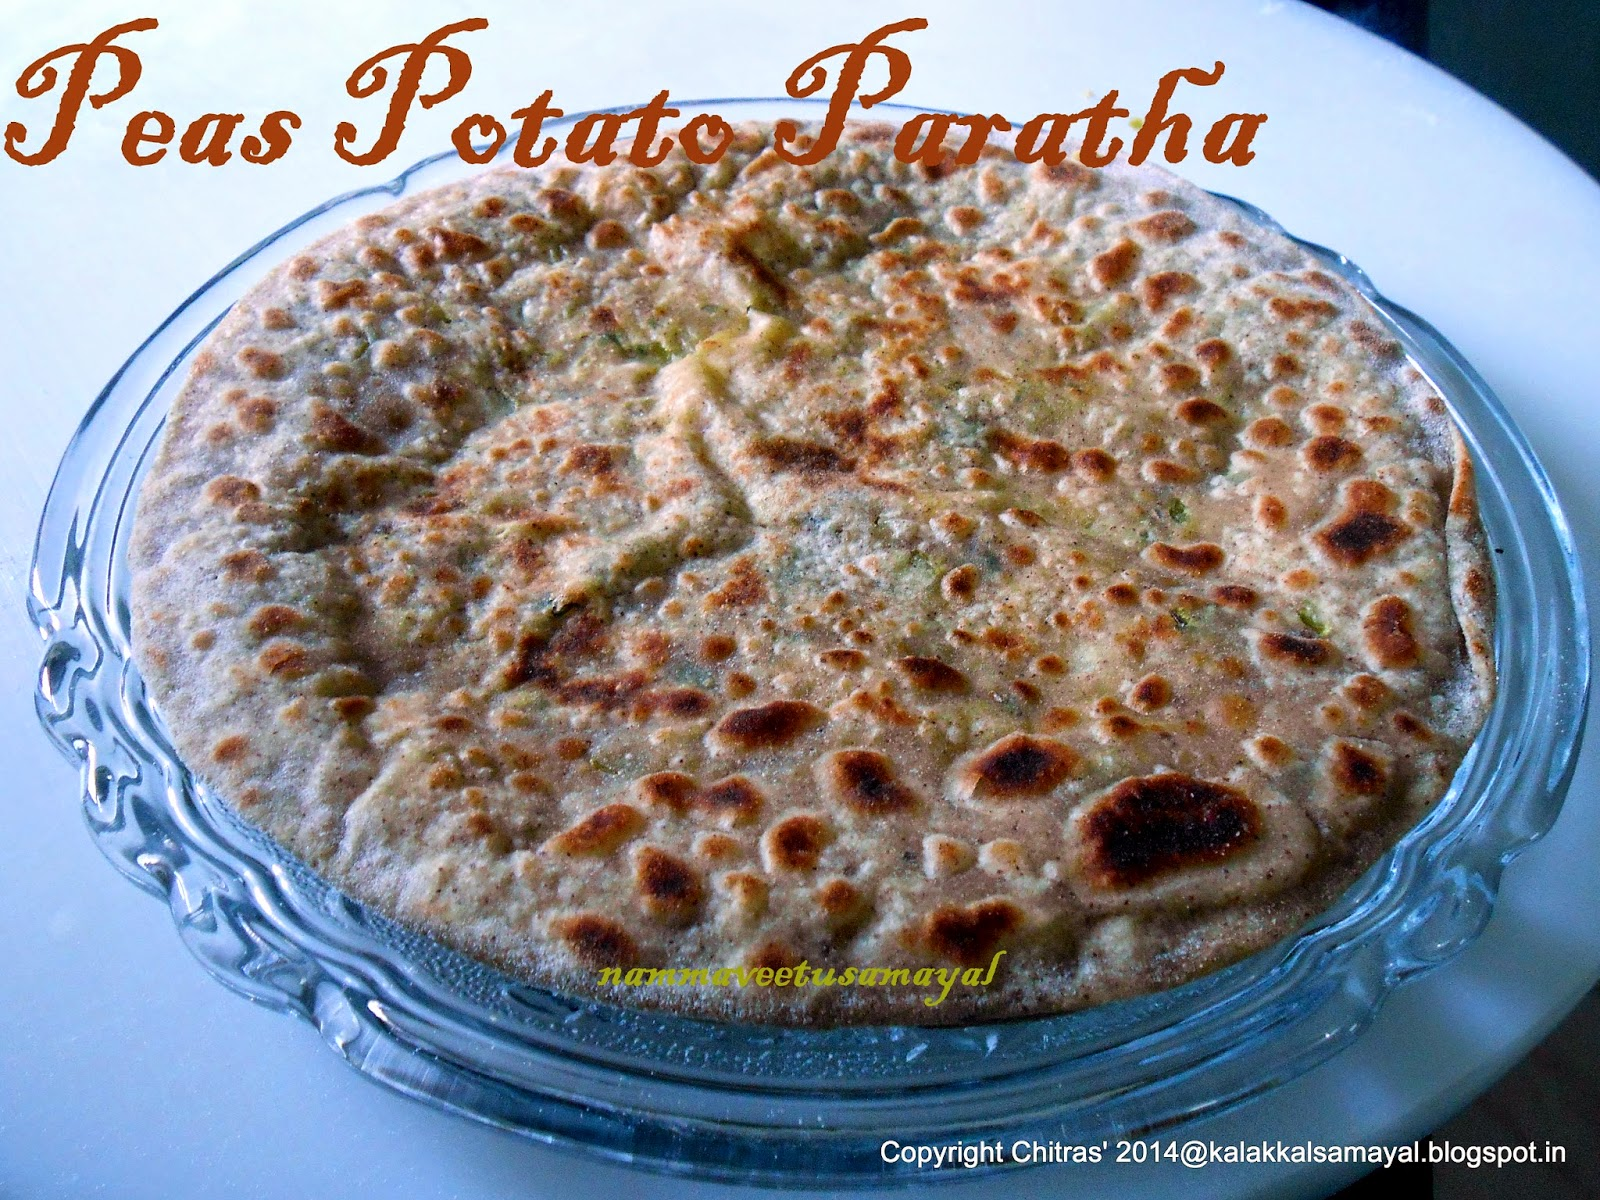 Peas Potato Paratha